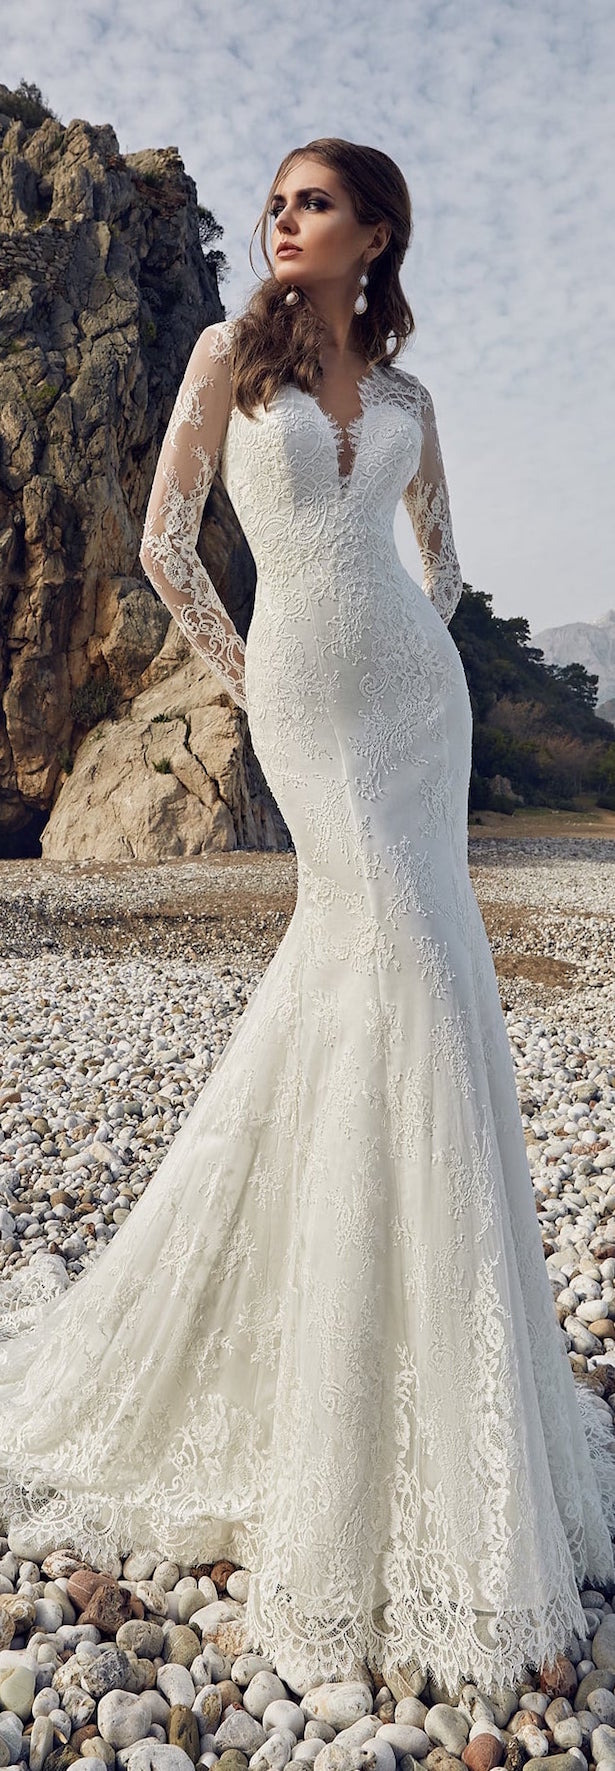 Lanesta Bridal - The Heart of The Ocean Collection 59